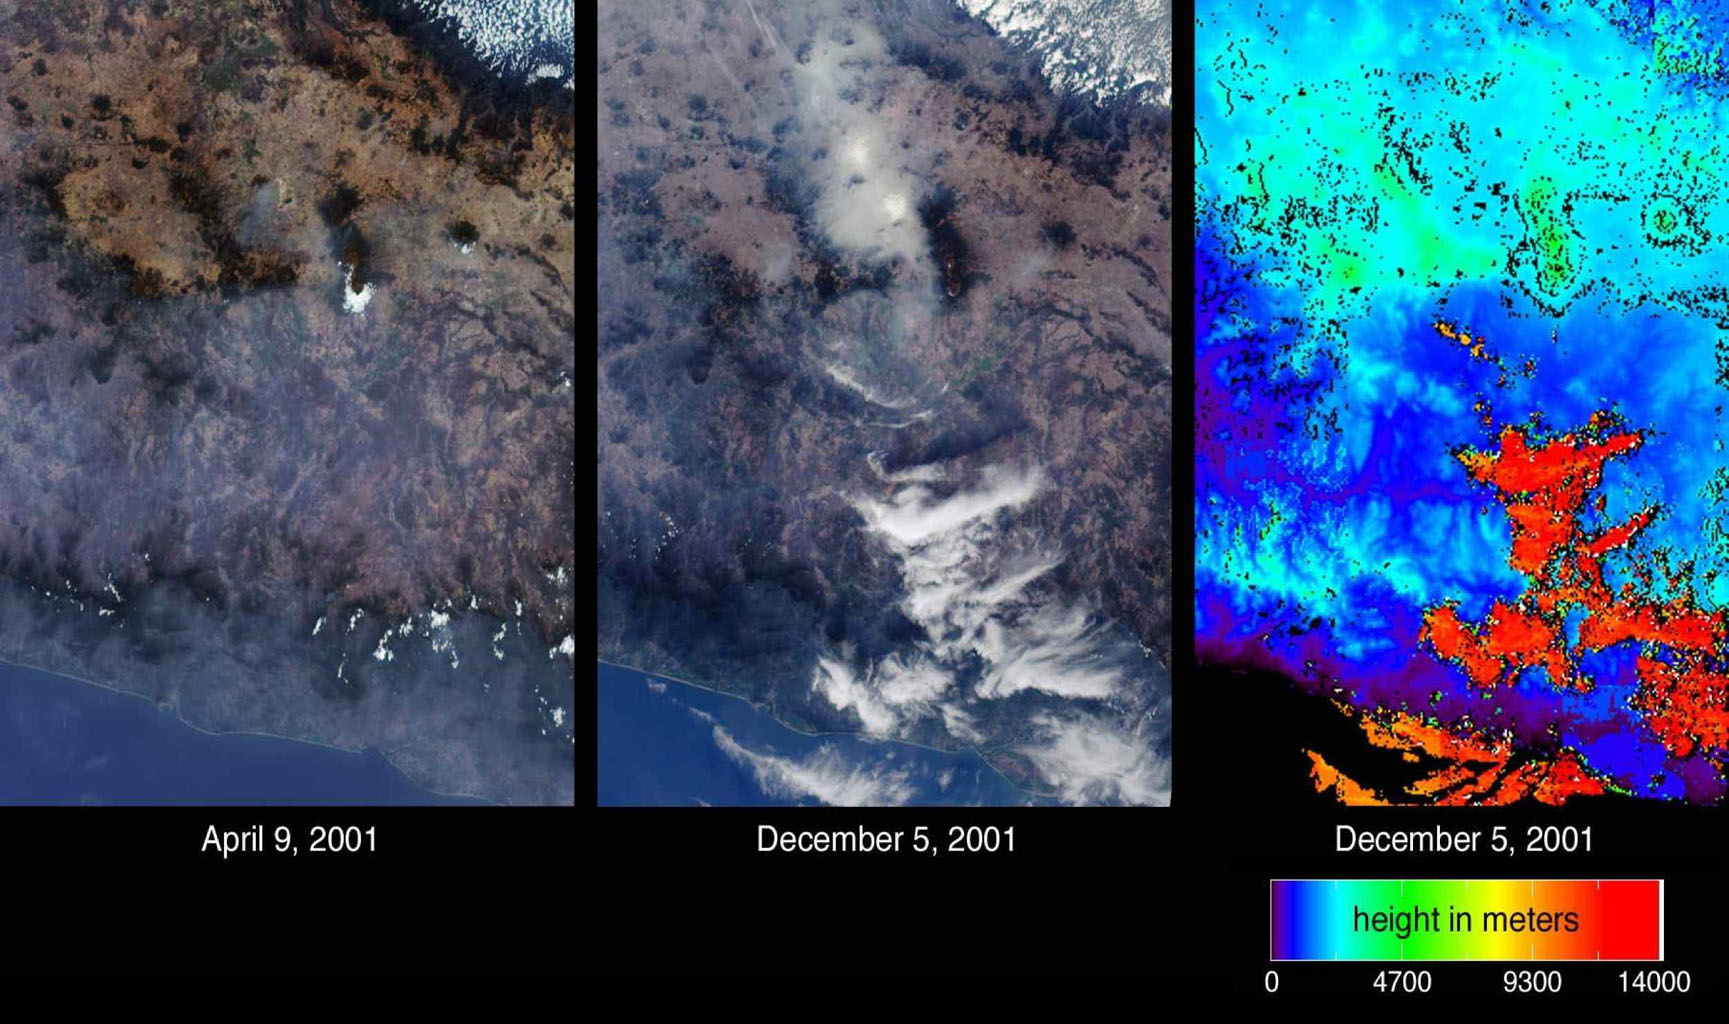 Mexico City has one of the world's most serious air pollution problems. These images from NASA's Terra satellite were captured on April 9 and December 5, 2001.